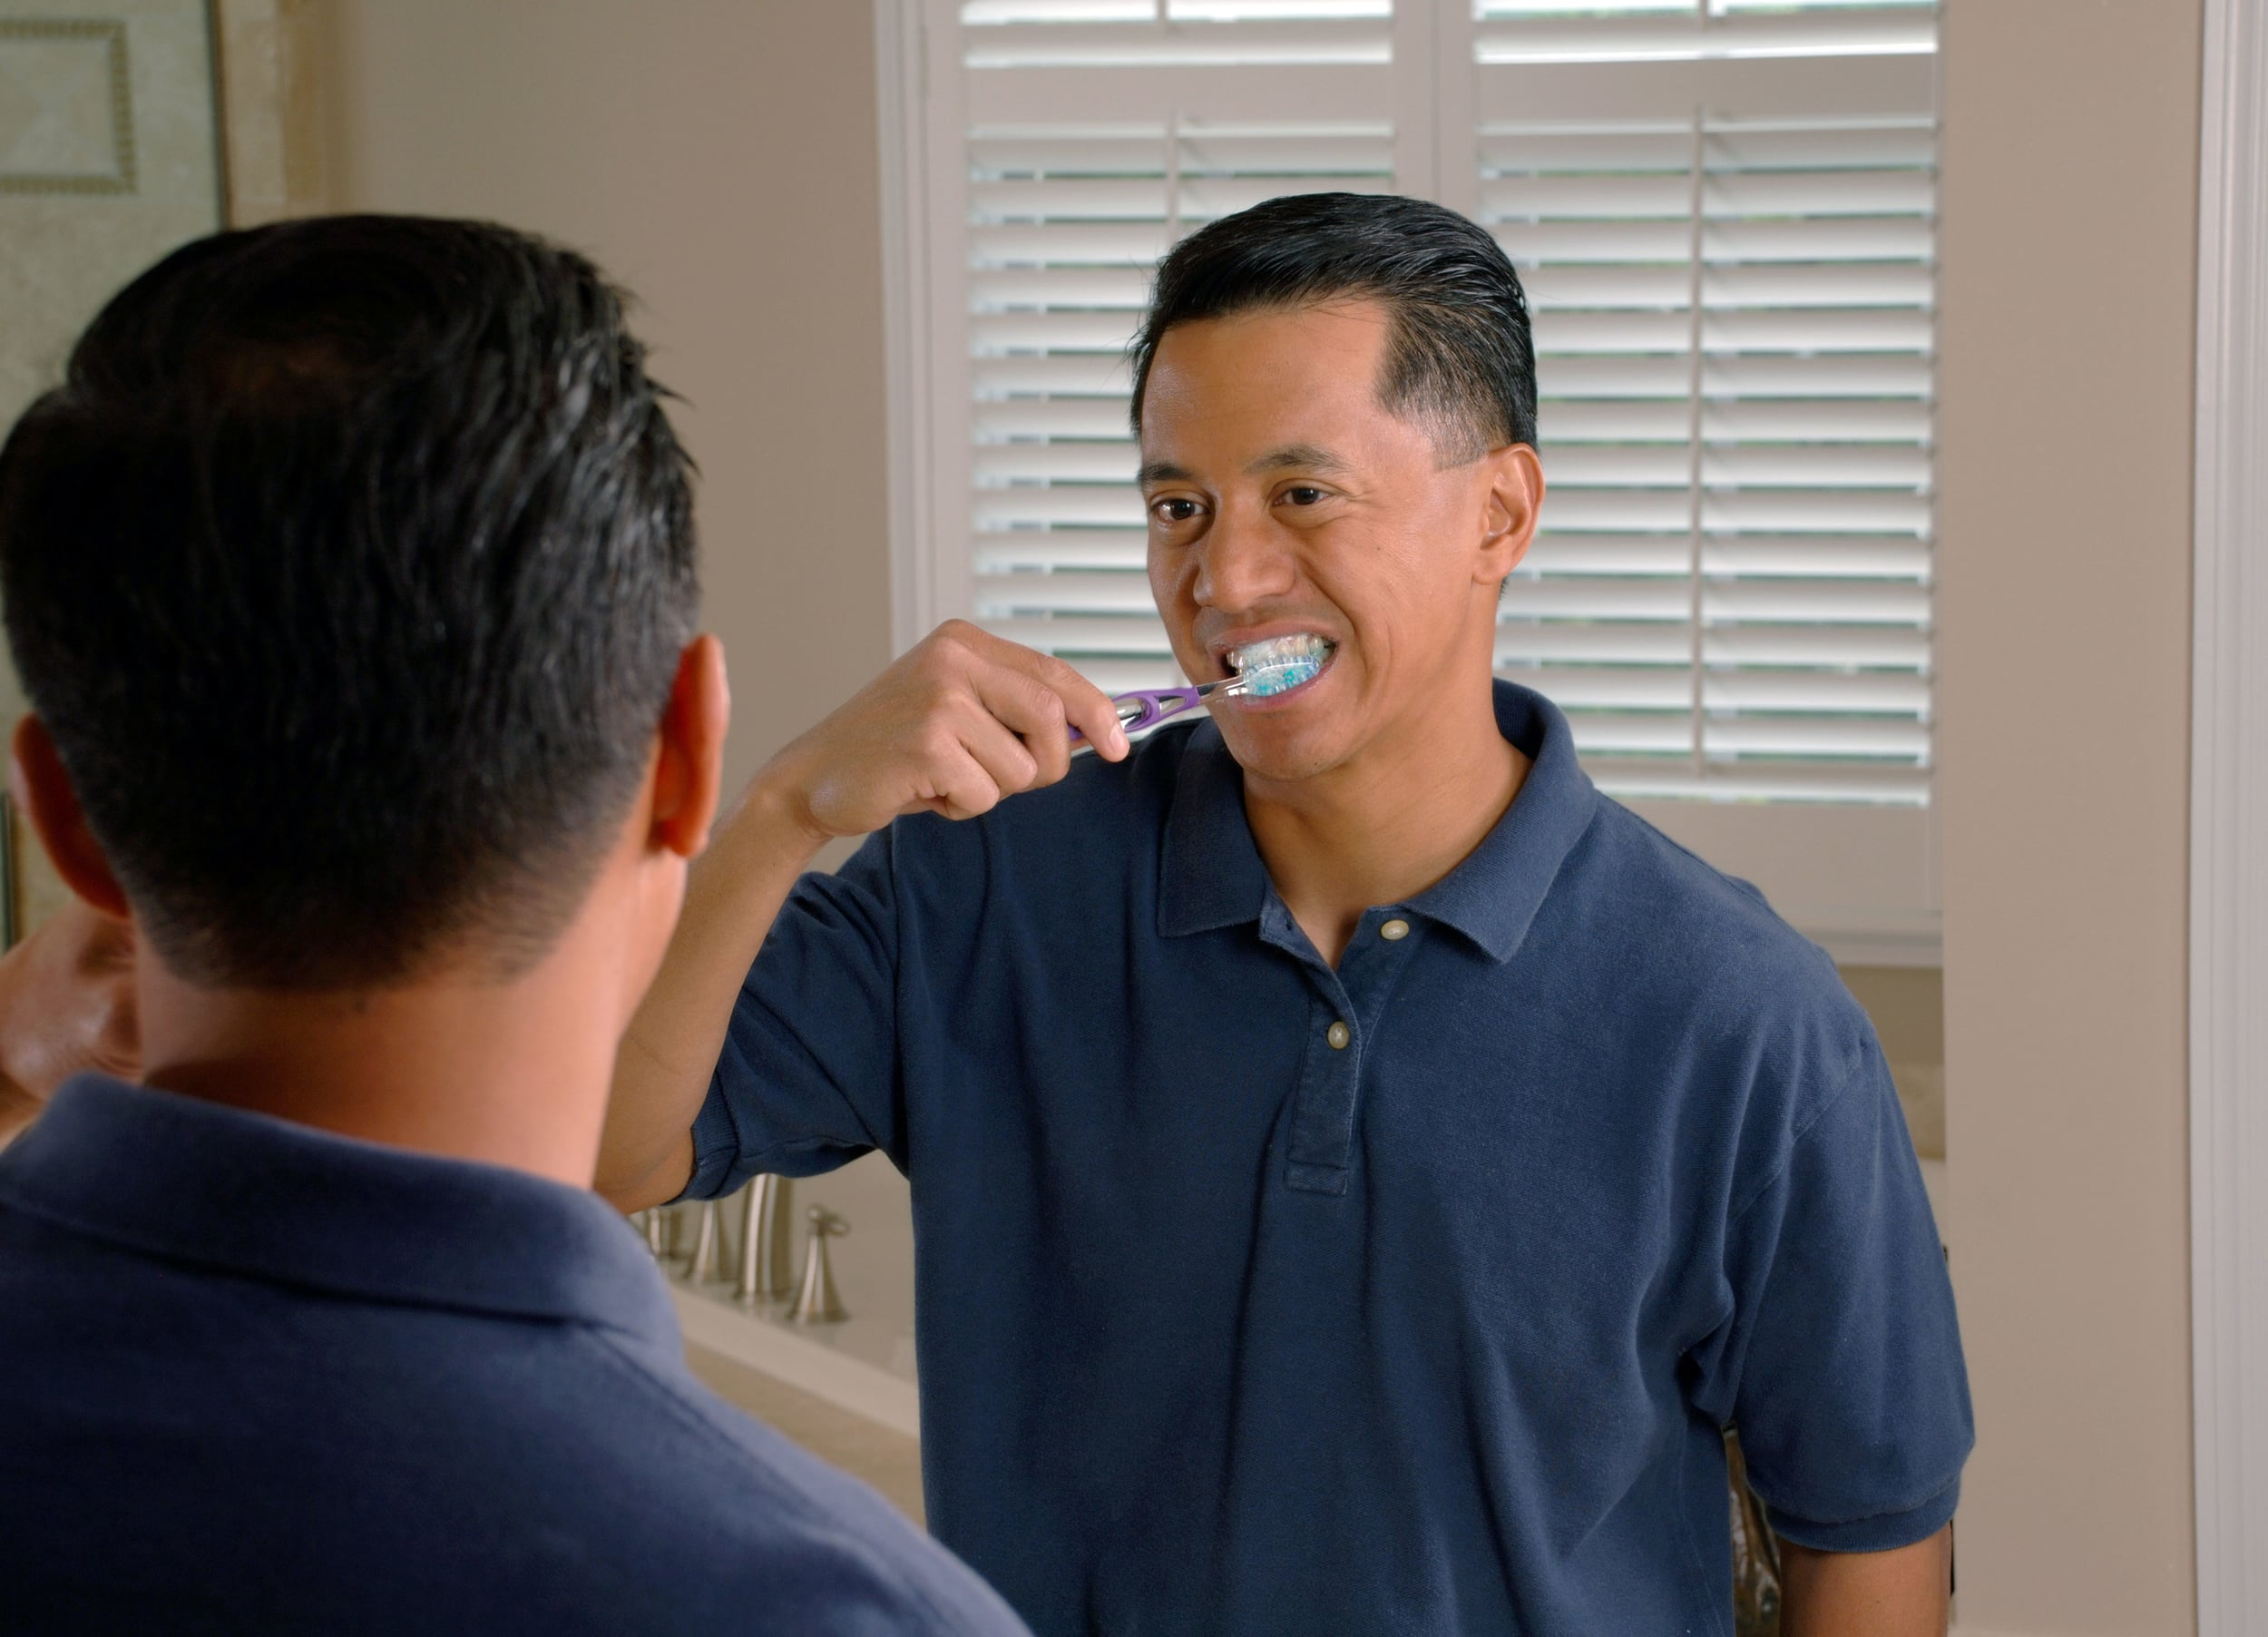 This is a man brushing his teeth!